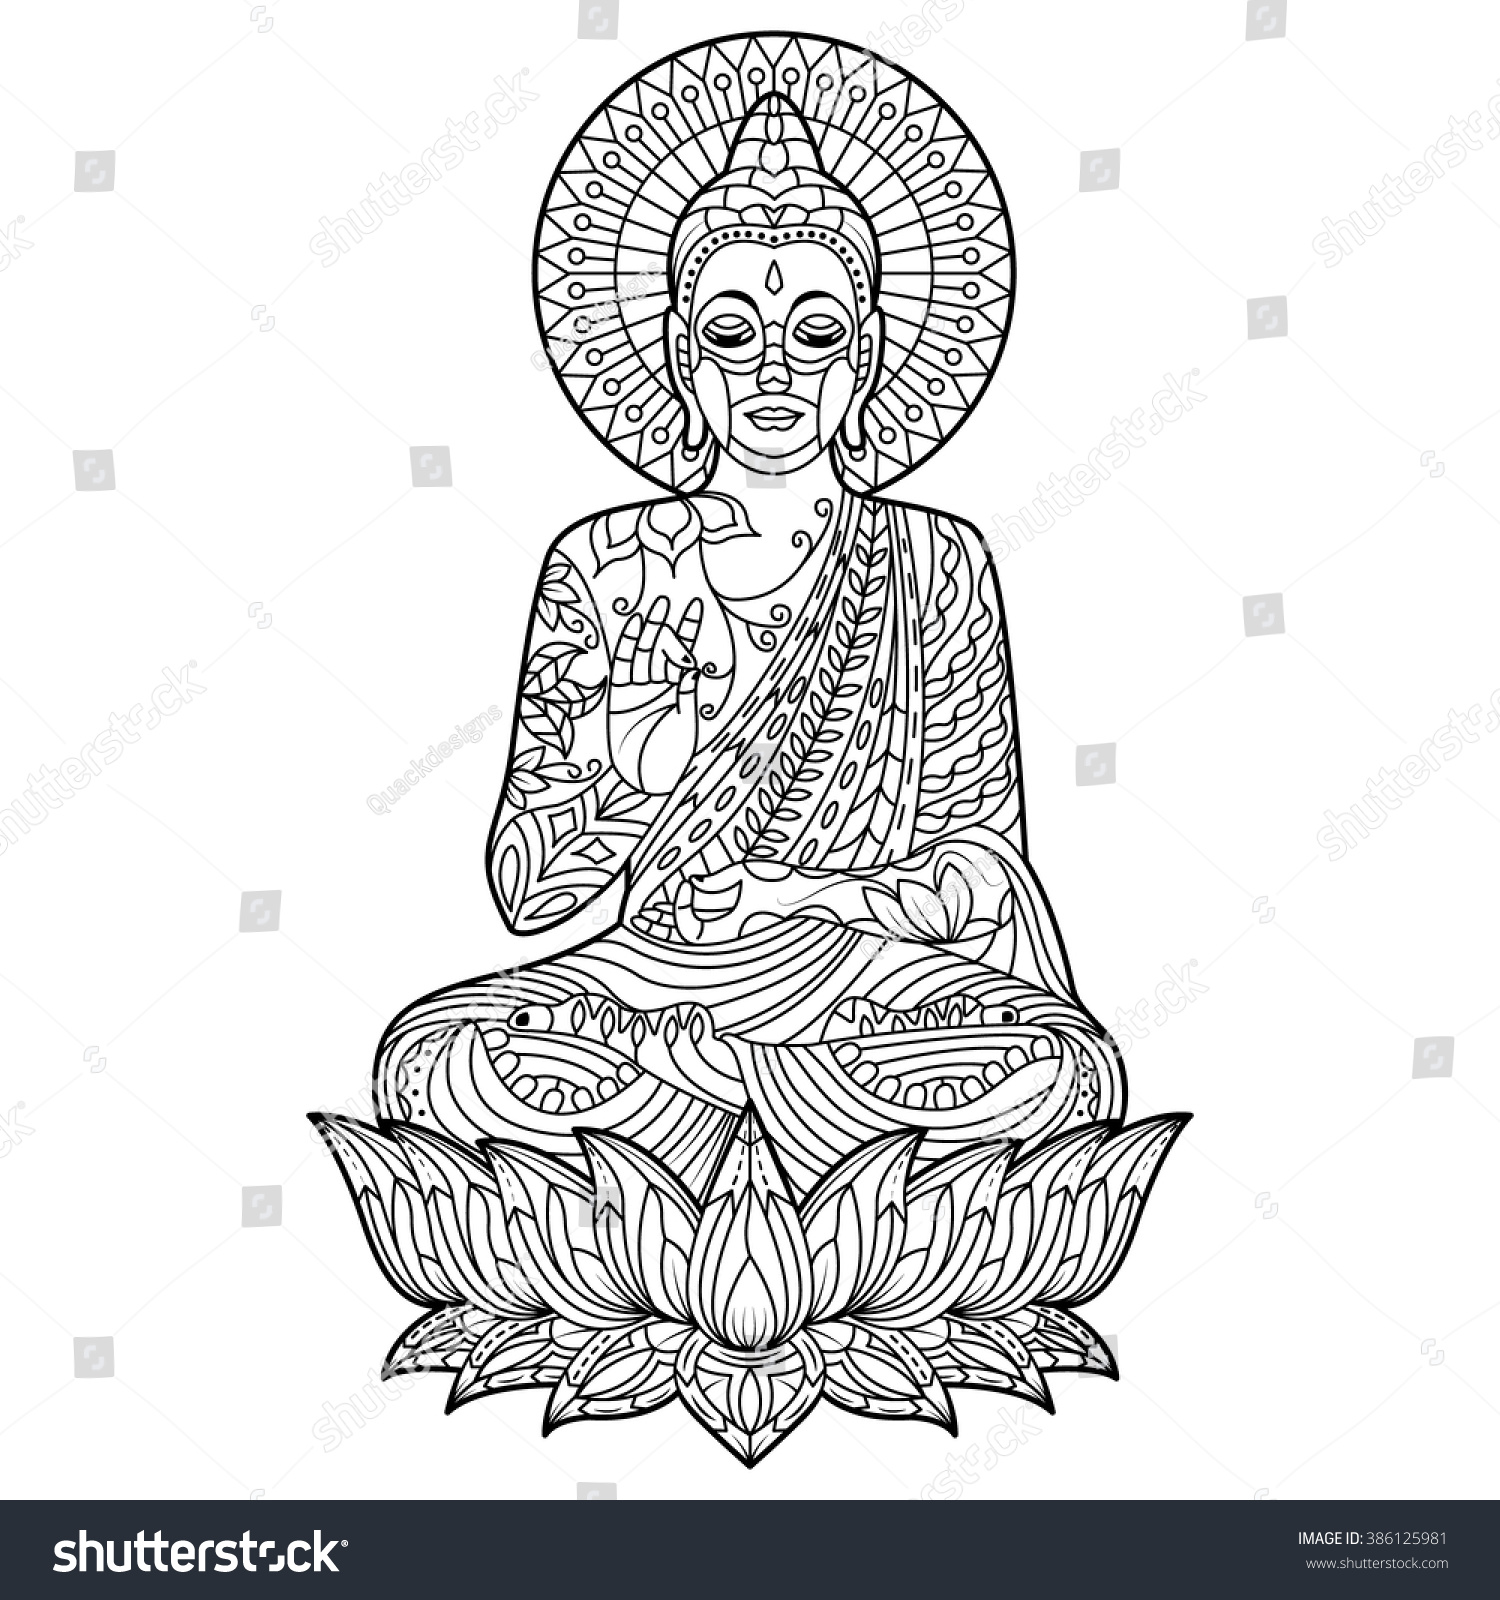 Adult Coloring Book Pages Free Download Zen Bohemian Sacred Geometry